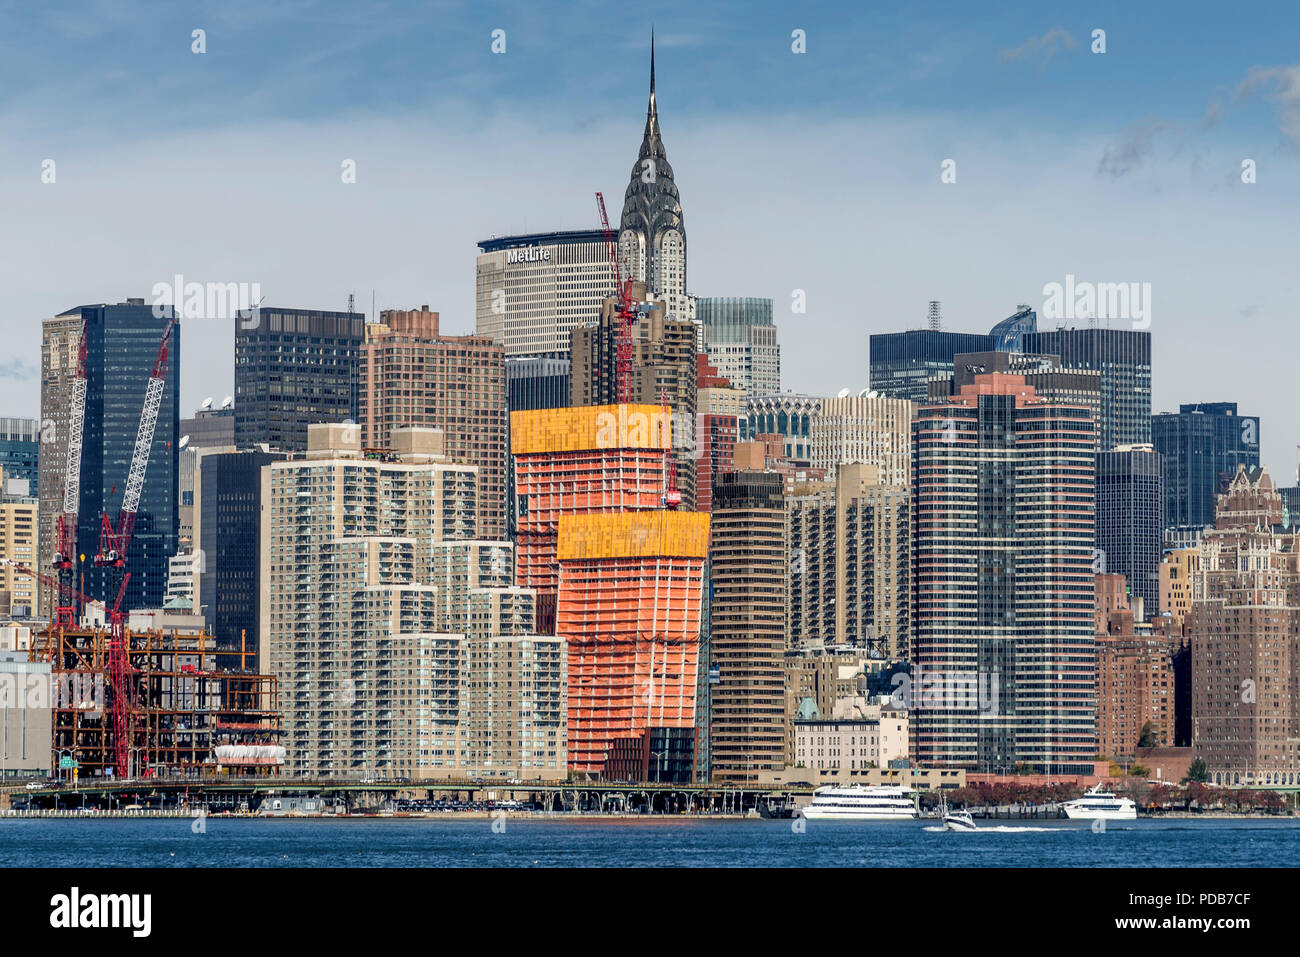 29-10-15, New York, USA. Construction work in Manhattan as seen from the East River ferry pier in Greenpoint, Brooklyn.  Photo: © Simon Grosset - Stock Image